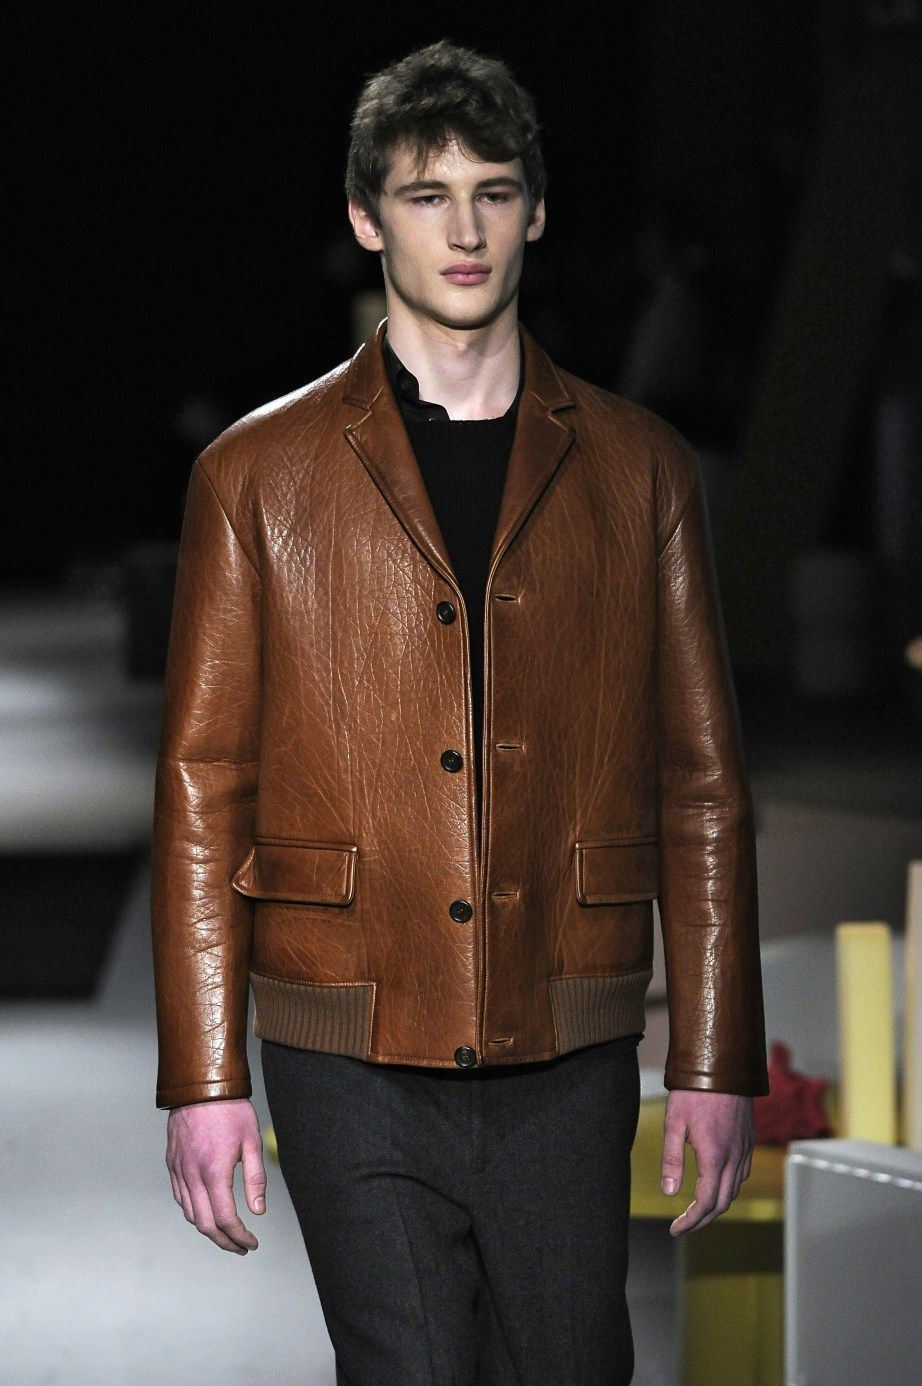 pradafall_13_14 leather jacket leather means chaps and